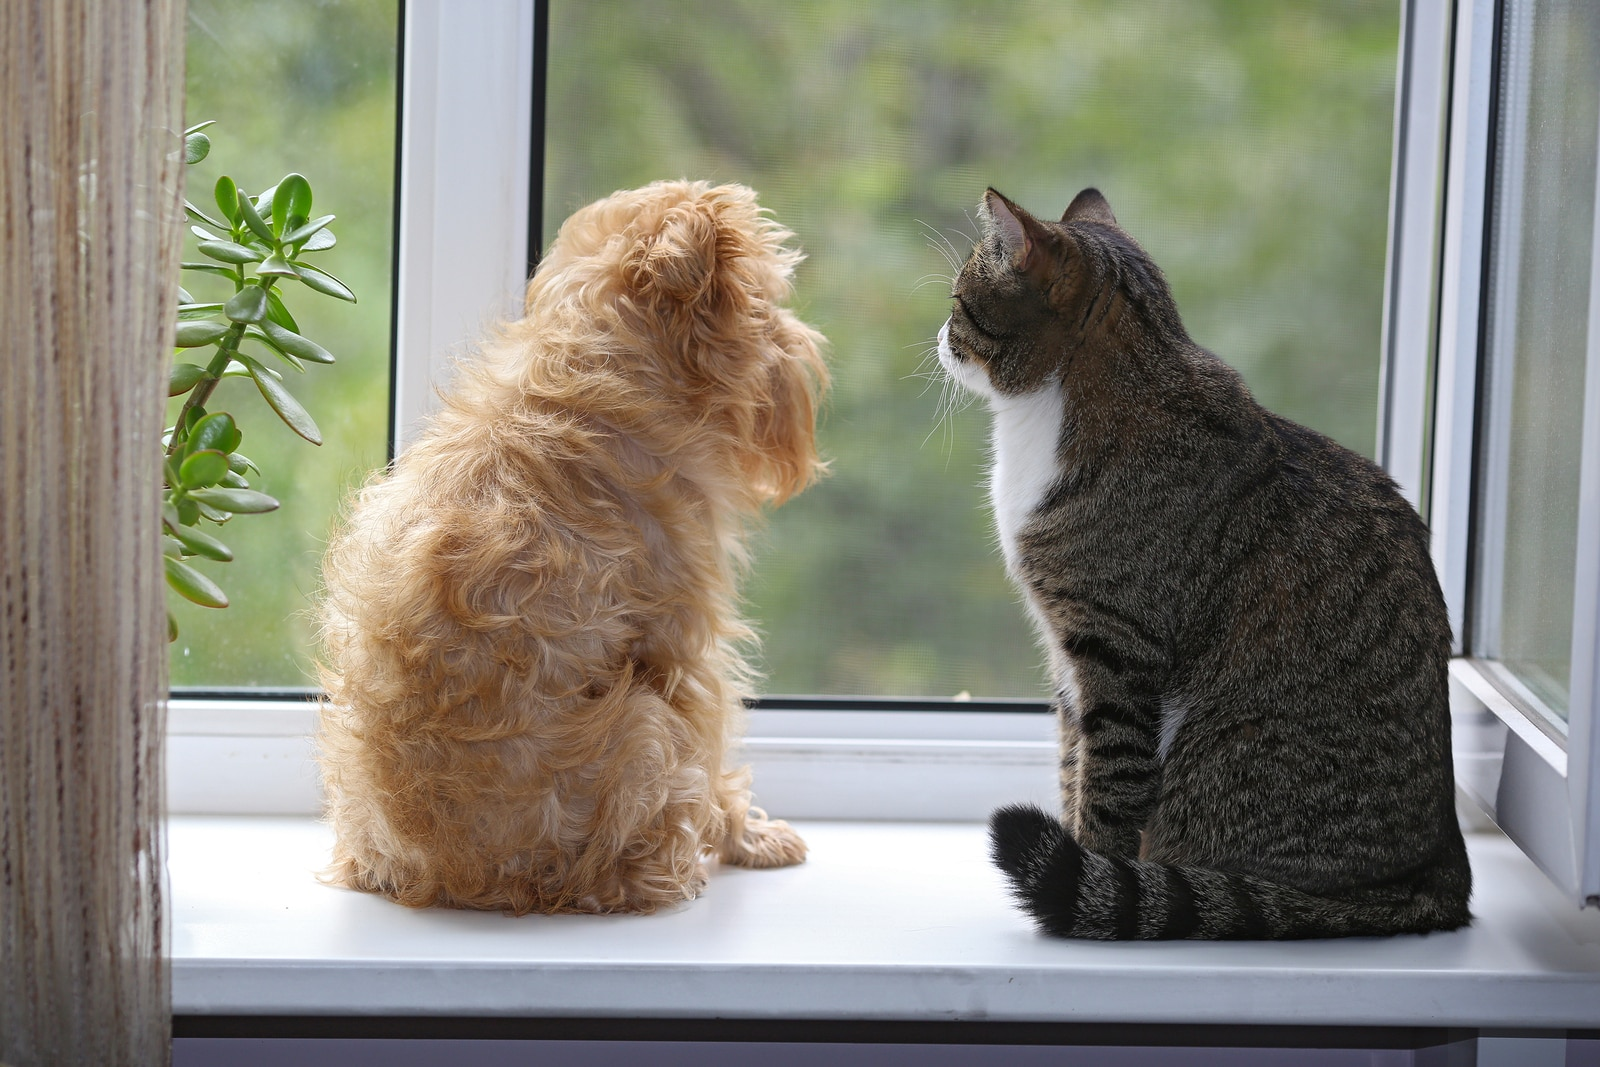 Striped gray cat and blonde long-haired dog sitting on the window sill staring outside together.